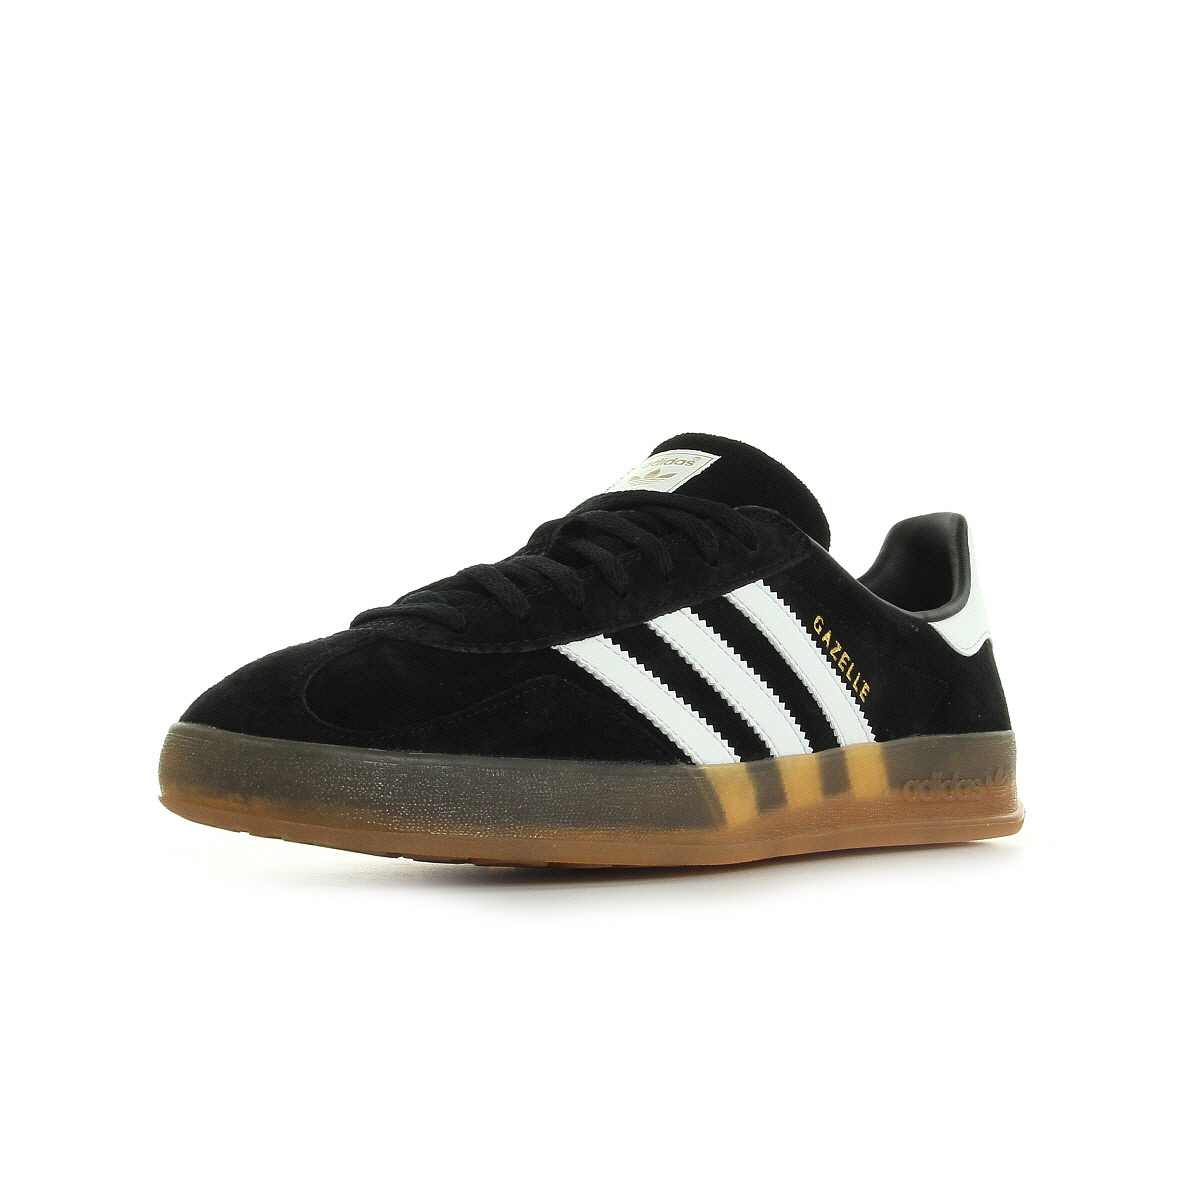 chaussures baskets adidas homme gazelle indoor taille noir noire cuir lacets ebay. Black Bedroom Furniture Sets. Home Design Ideas